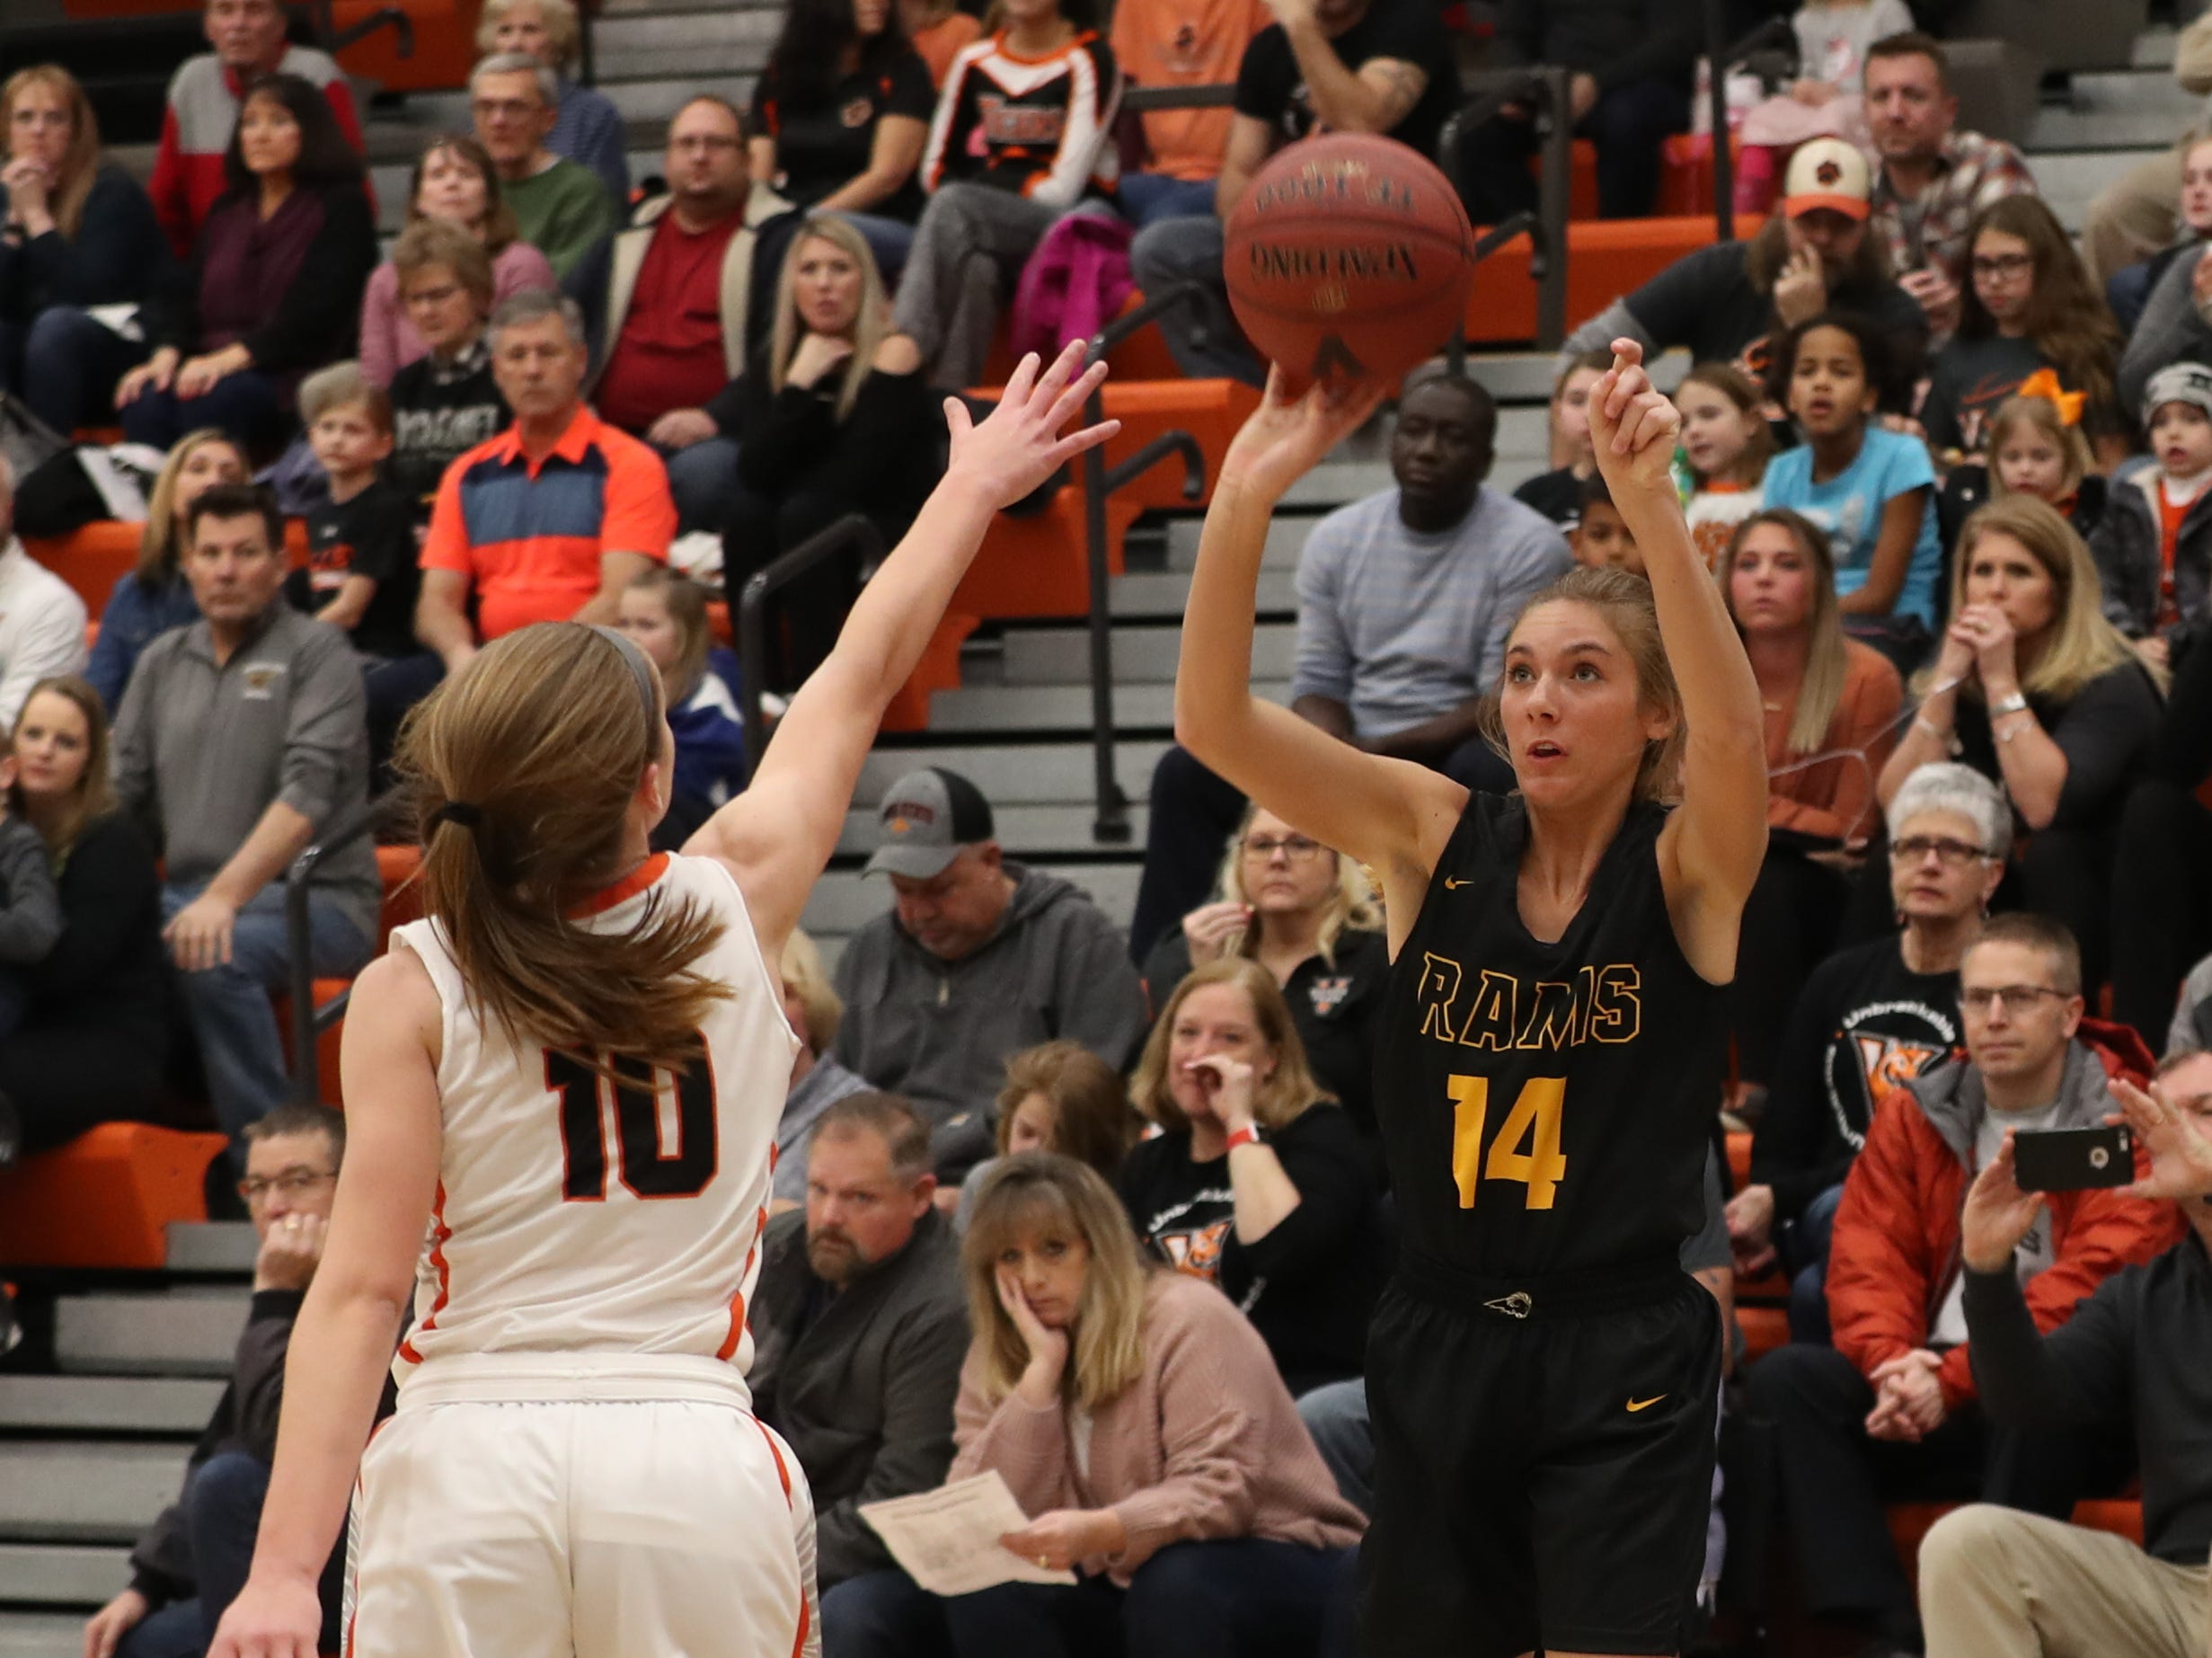 Southeast Polk Rams' Jessica Stuart (14) shoots over Valley Tigers' Hayley Chappell during a girls basketball game at Valley High School on Jan. 11, 2019.